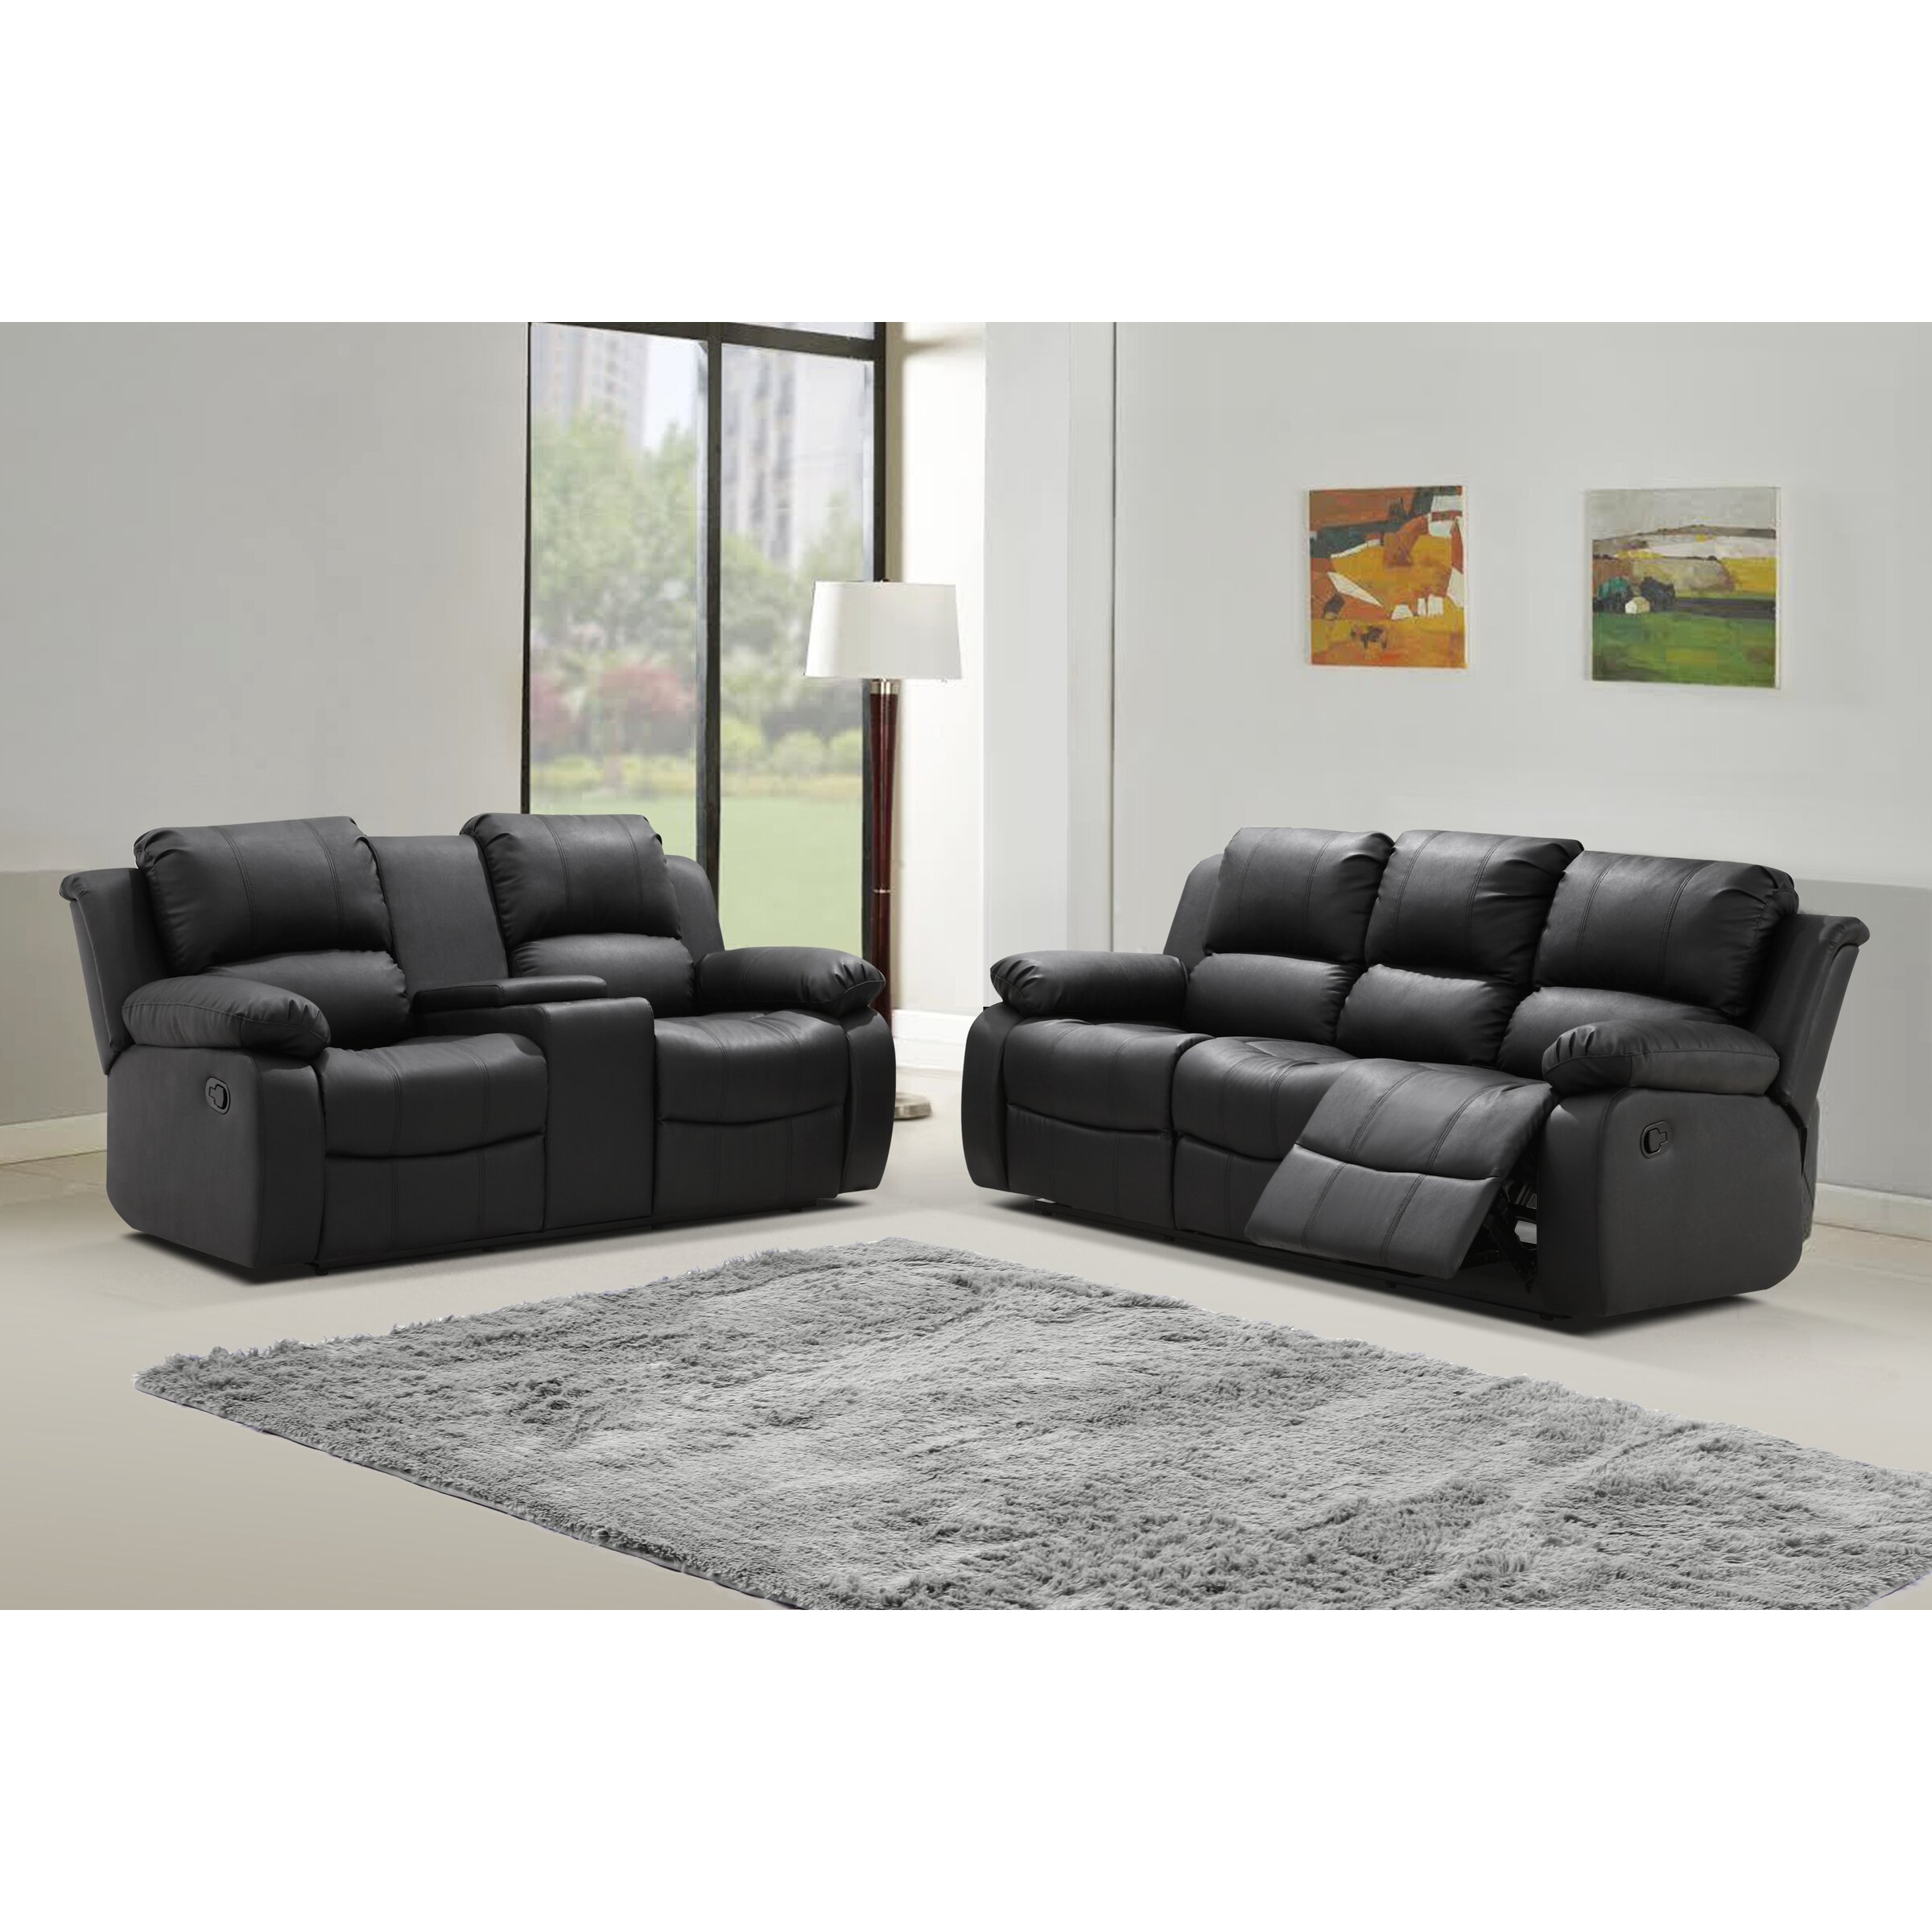 Living in style phoenix 2 piece bonded leather living room set